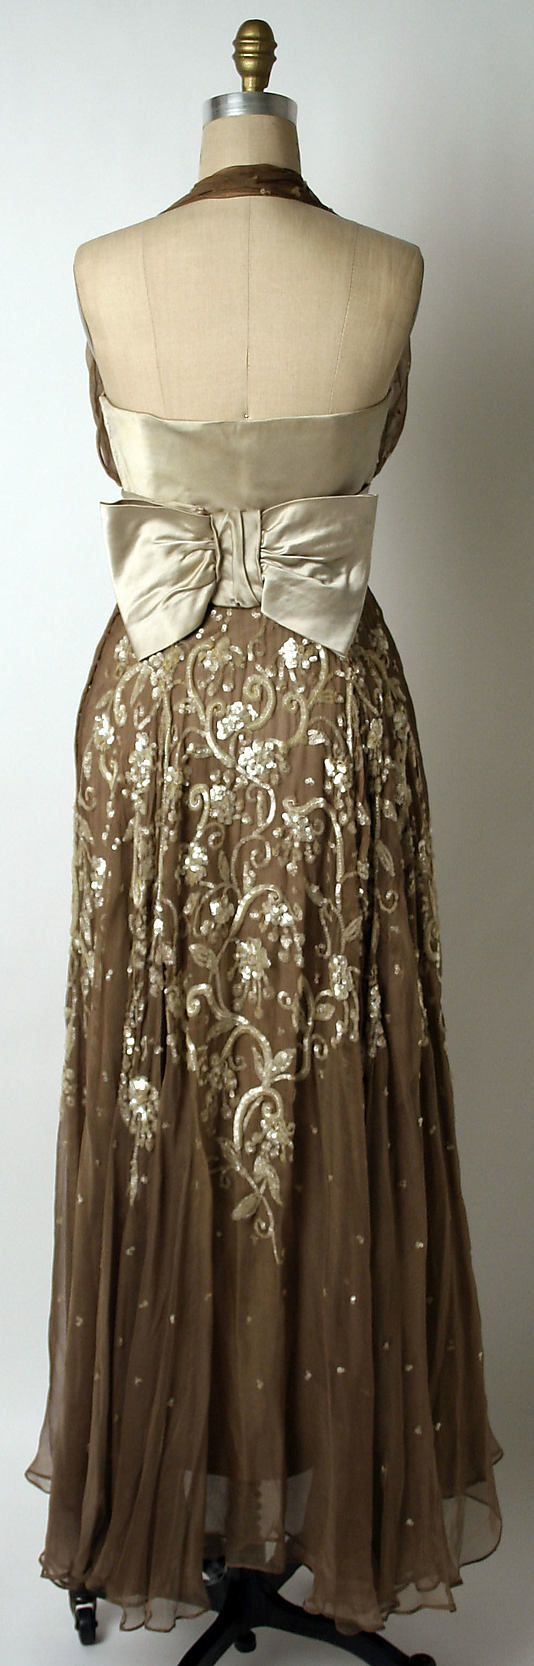 best clothes and shoes images on pinterest vintage fashion